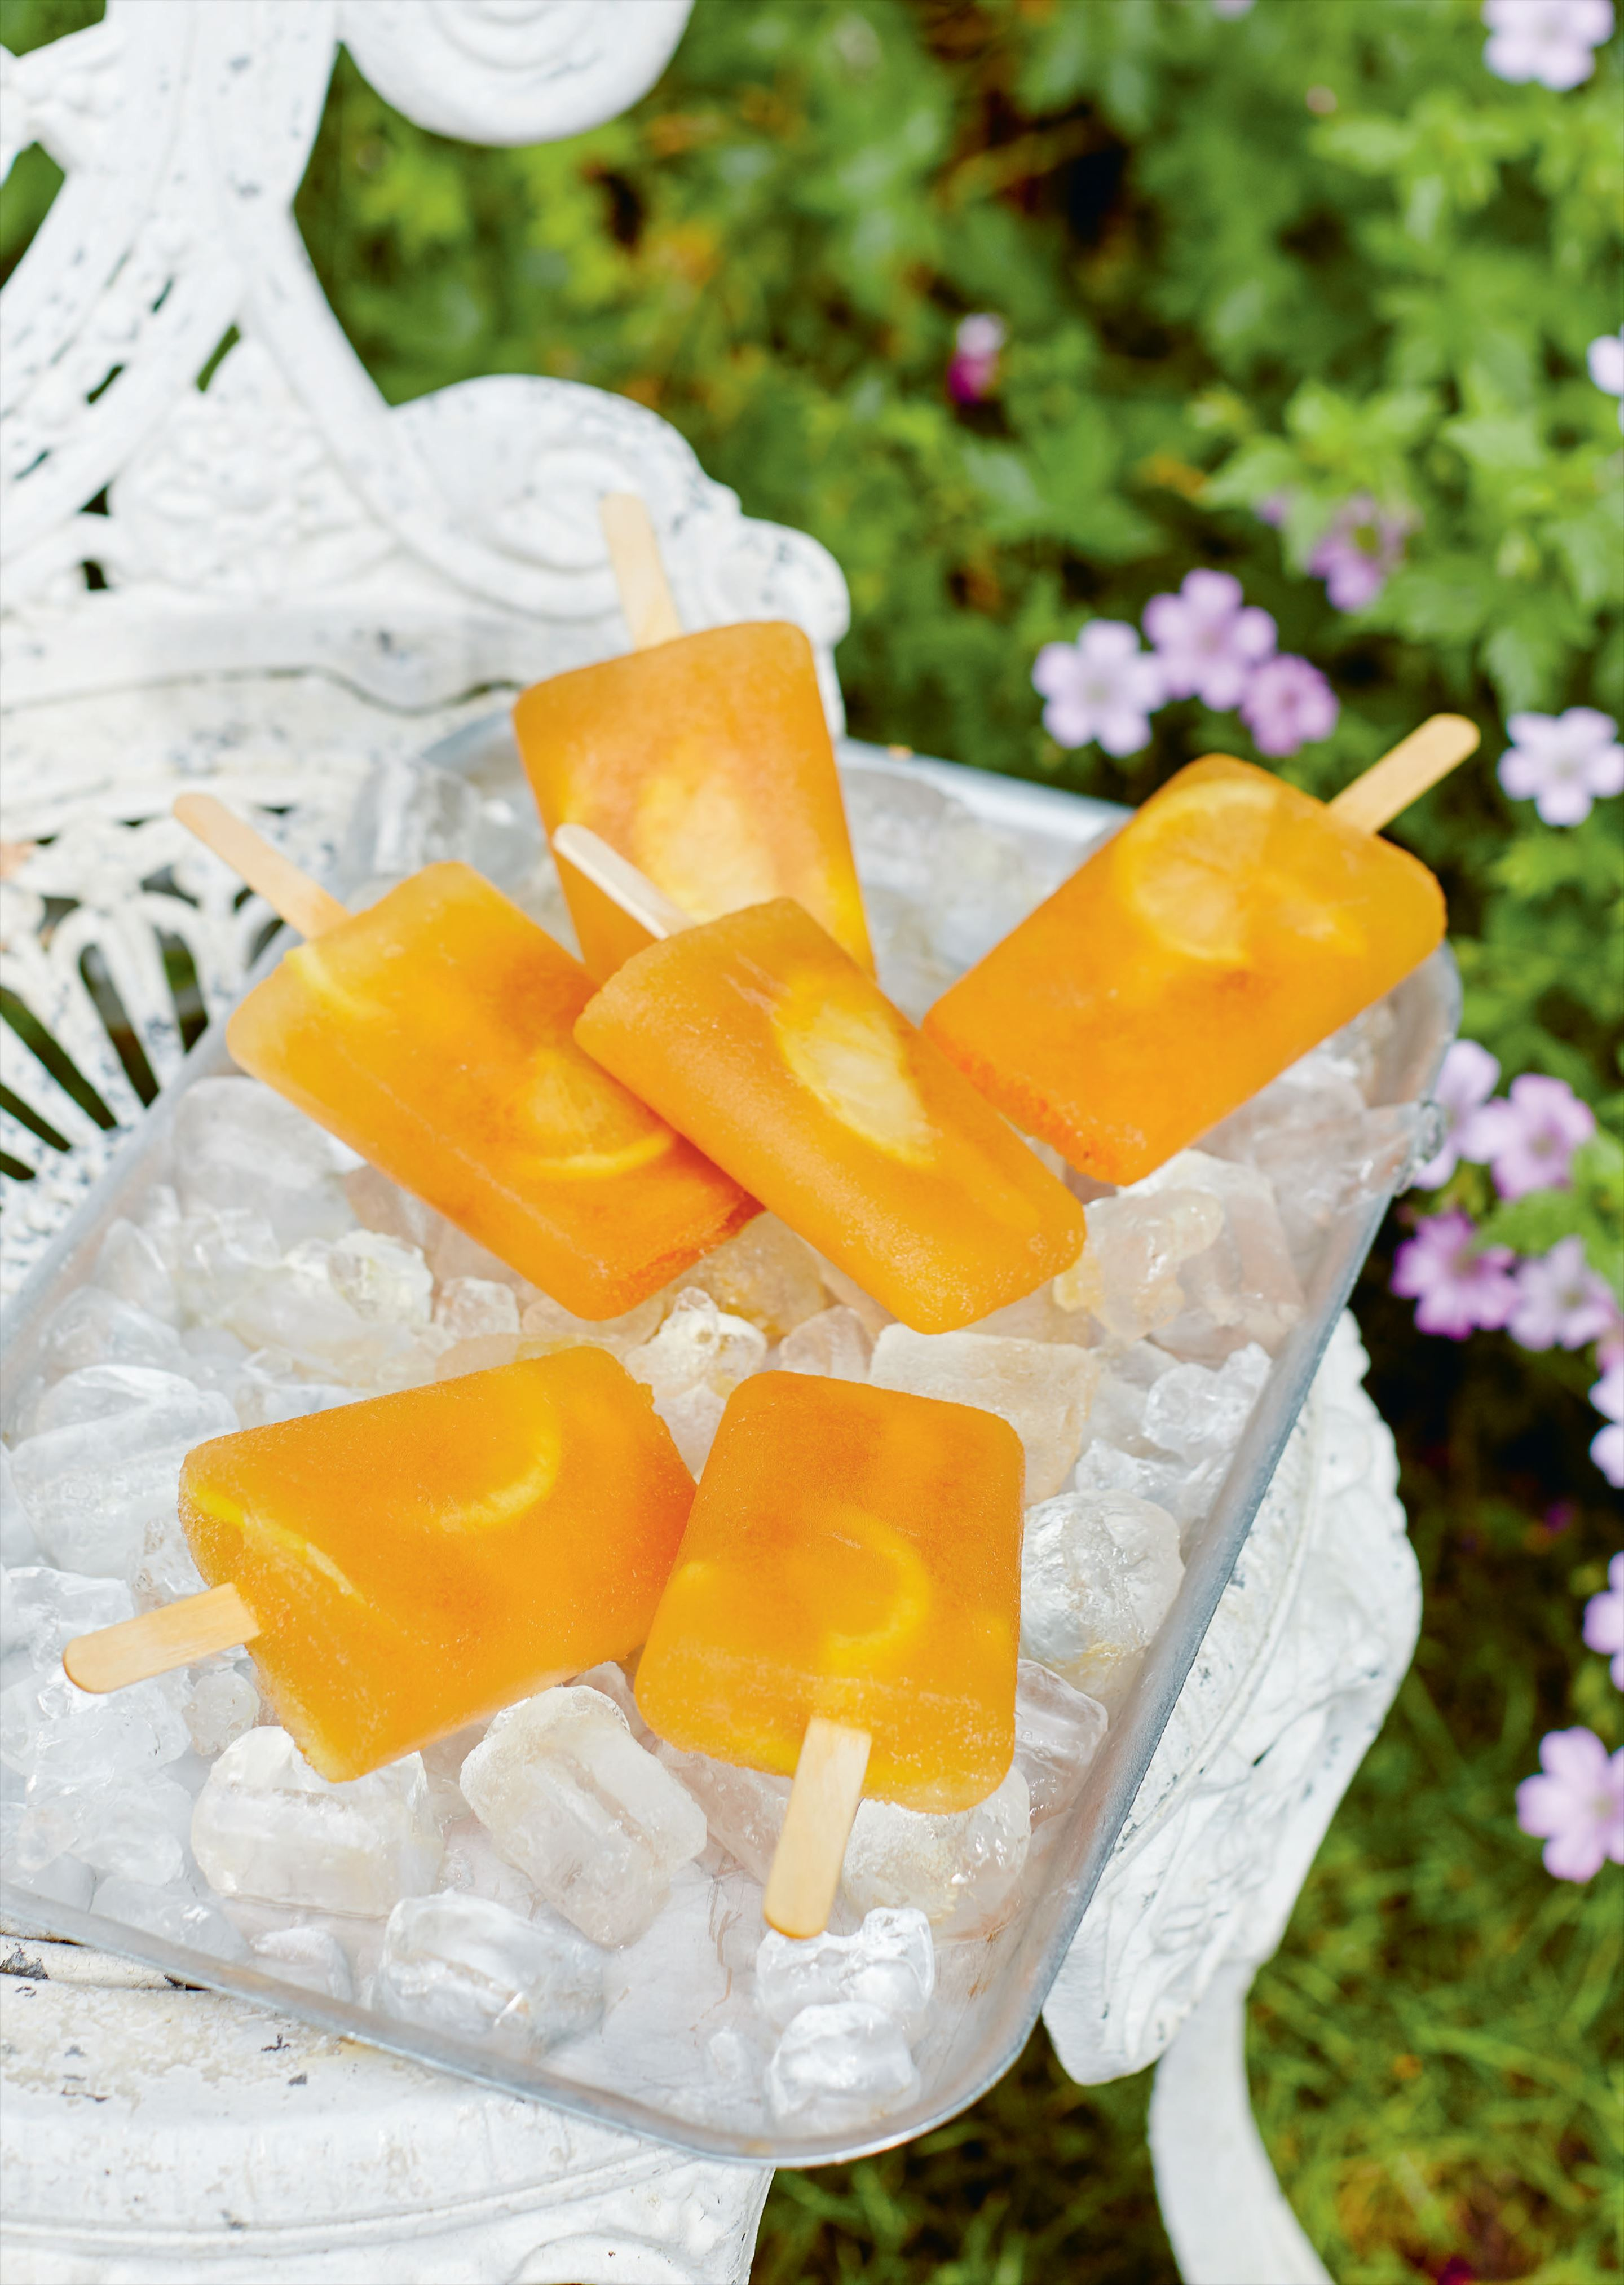 Lemon iced tea ice lolly